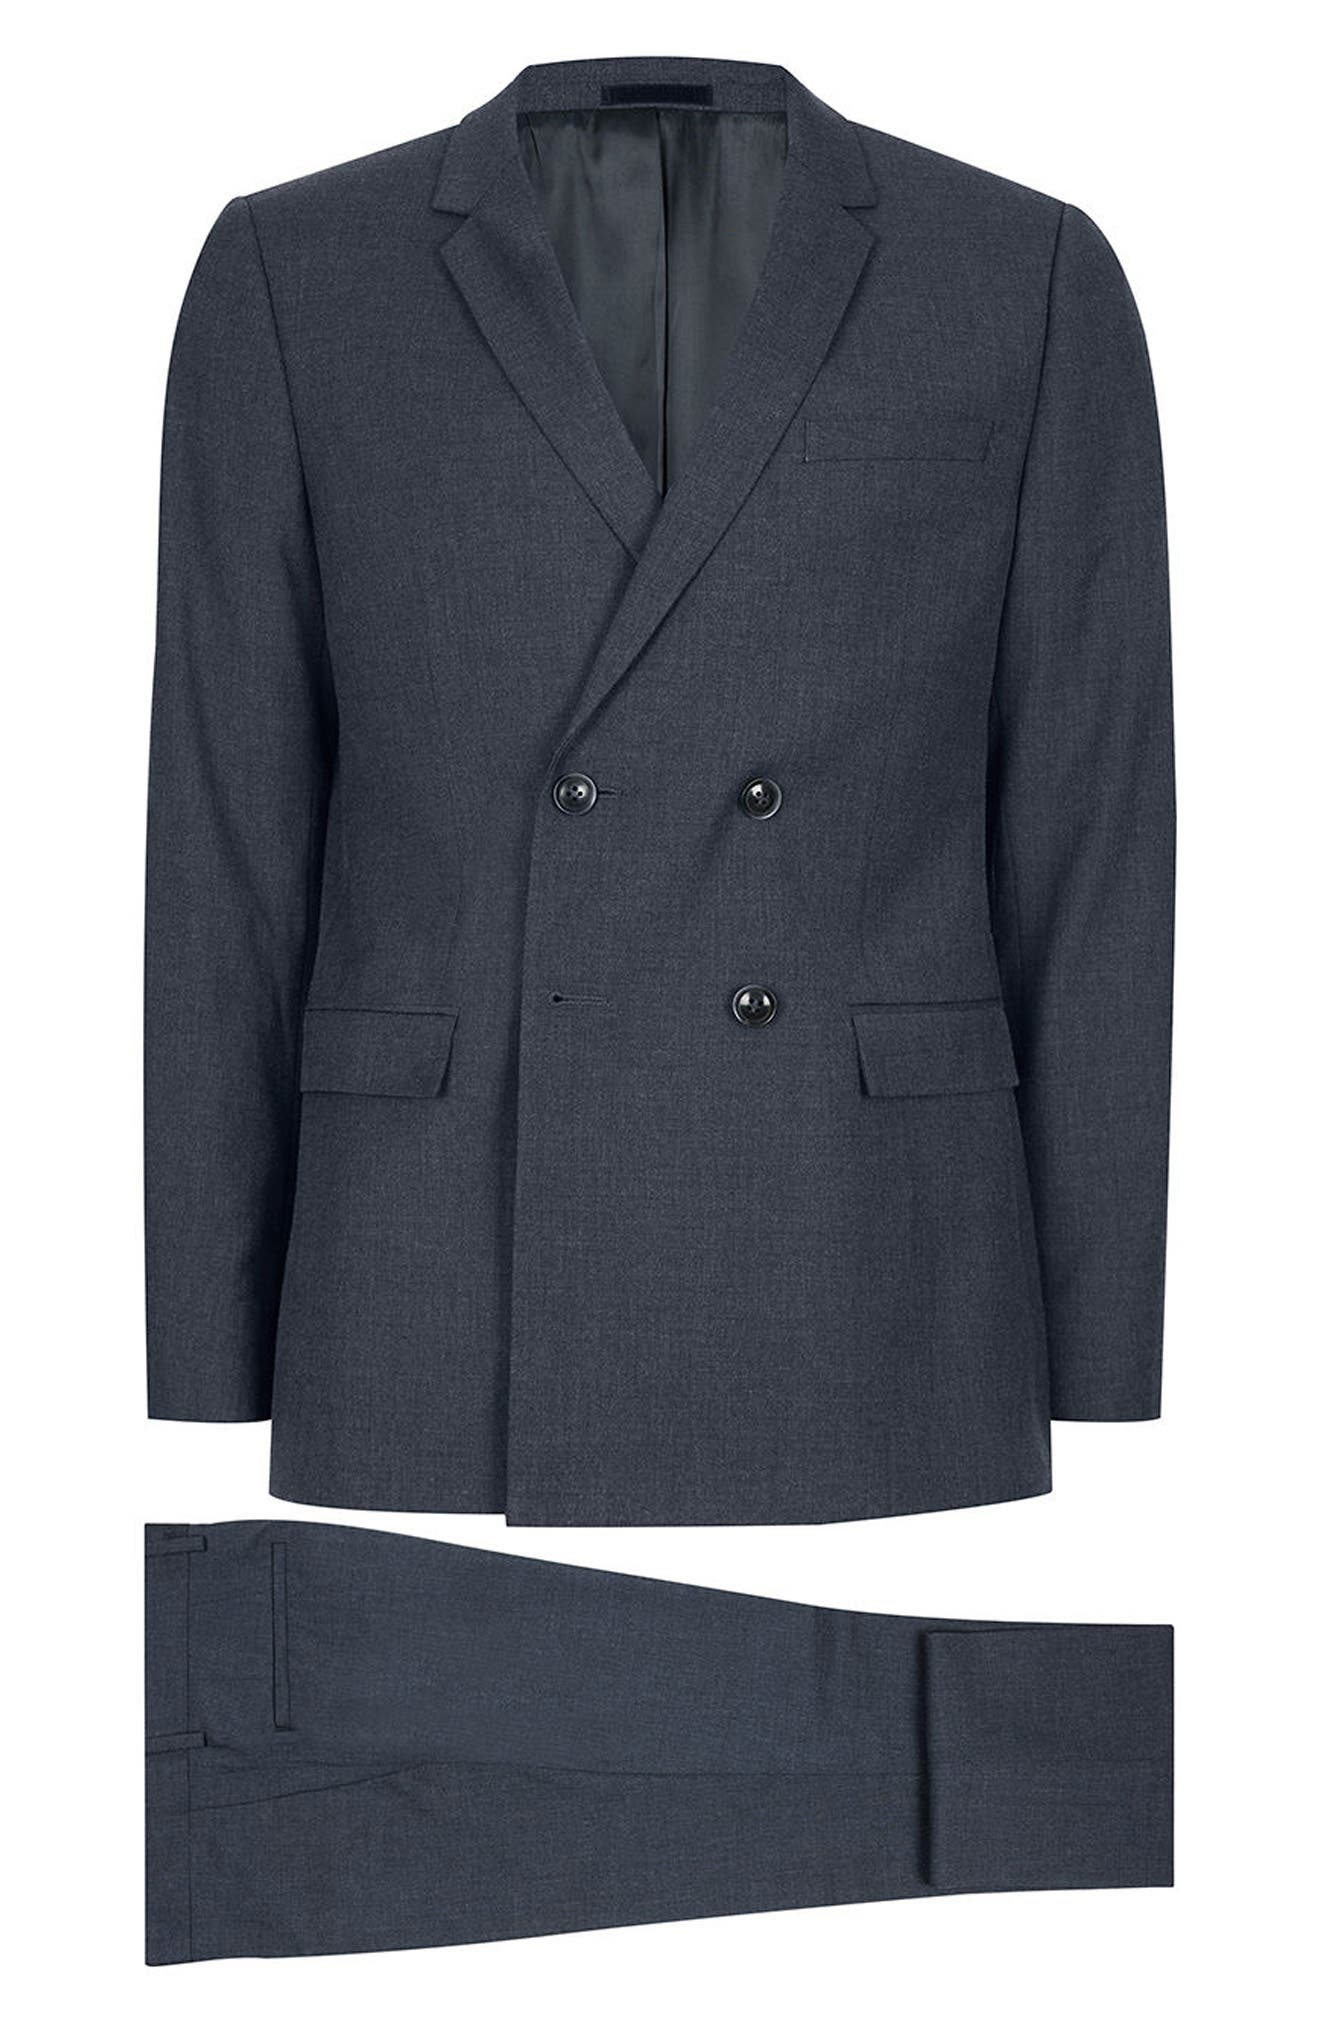 Skinny Fit Double Breasted Suit Jacket,                             Alternate thumbnail 7, color,                             410